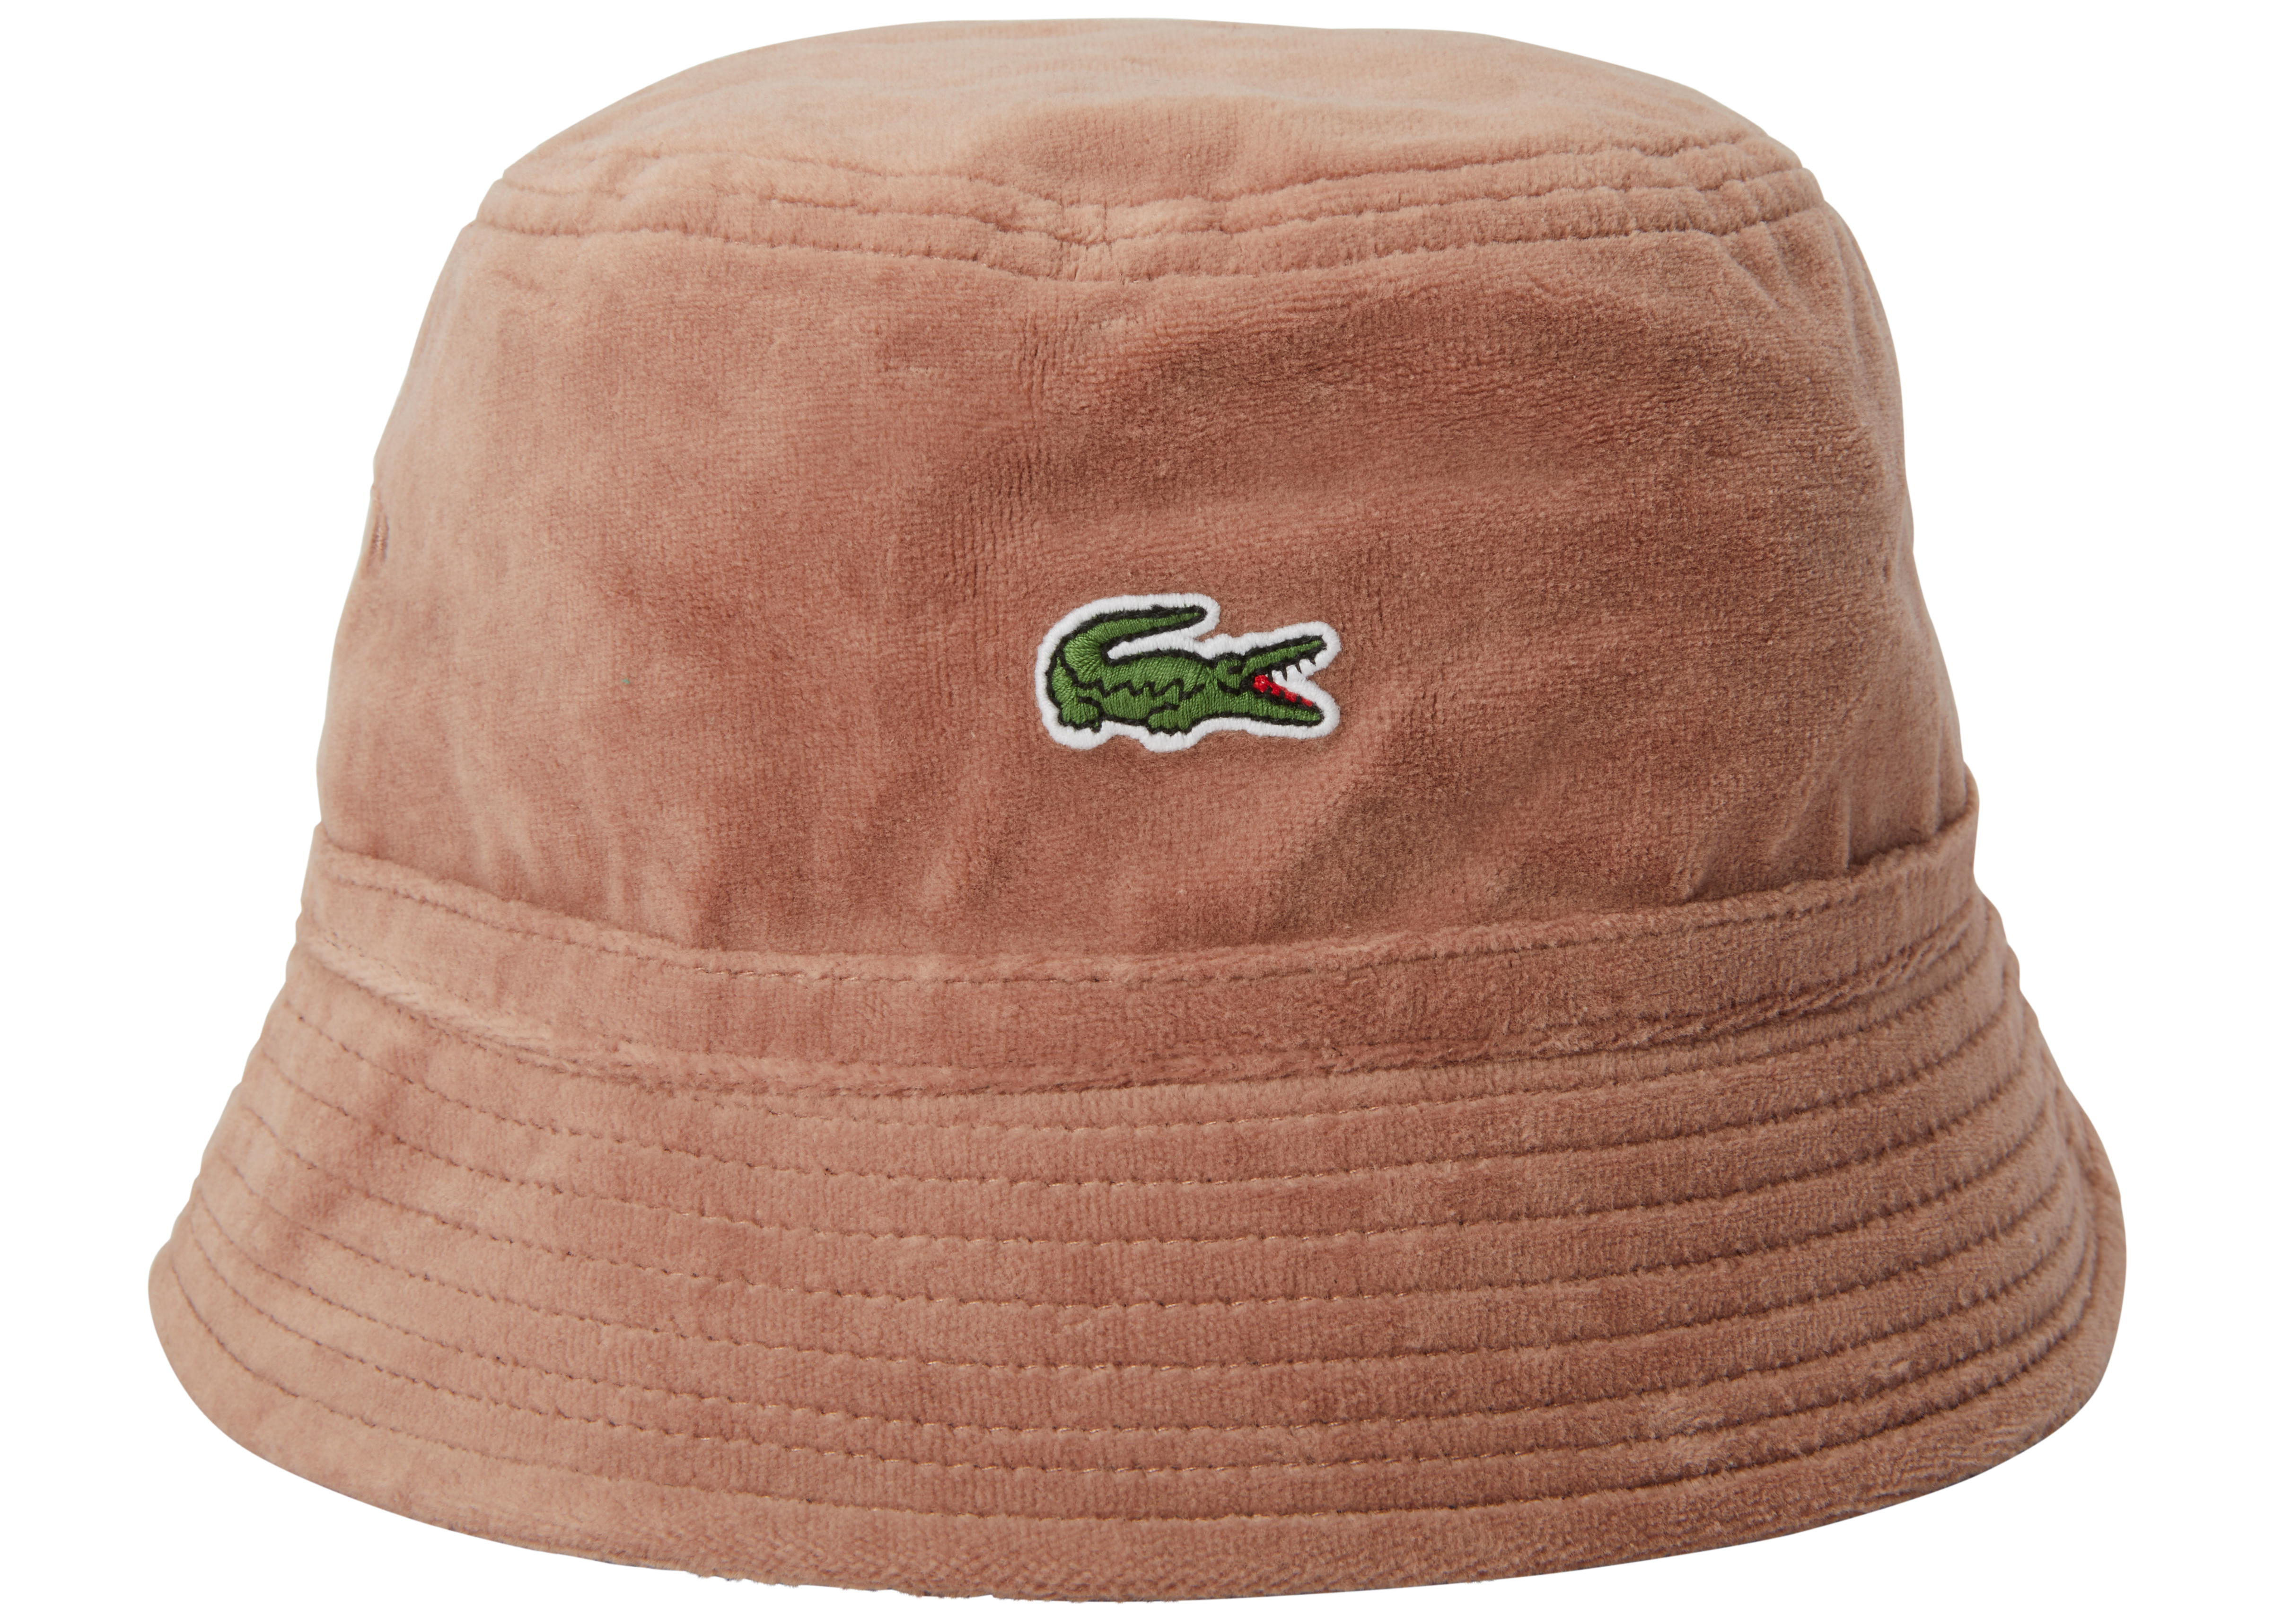 Supreme Lacoste Velour Crusher Teal M//L Bucket Camp Panel Hat Unisex